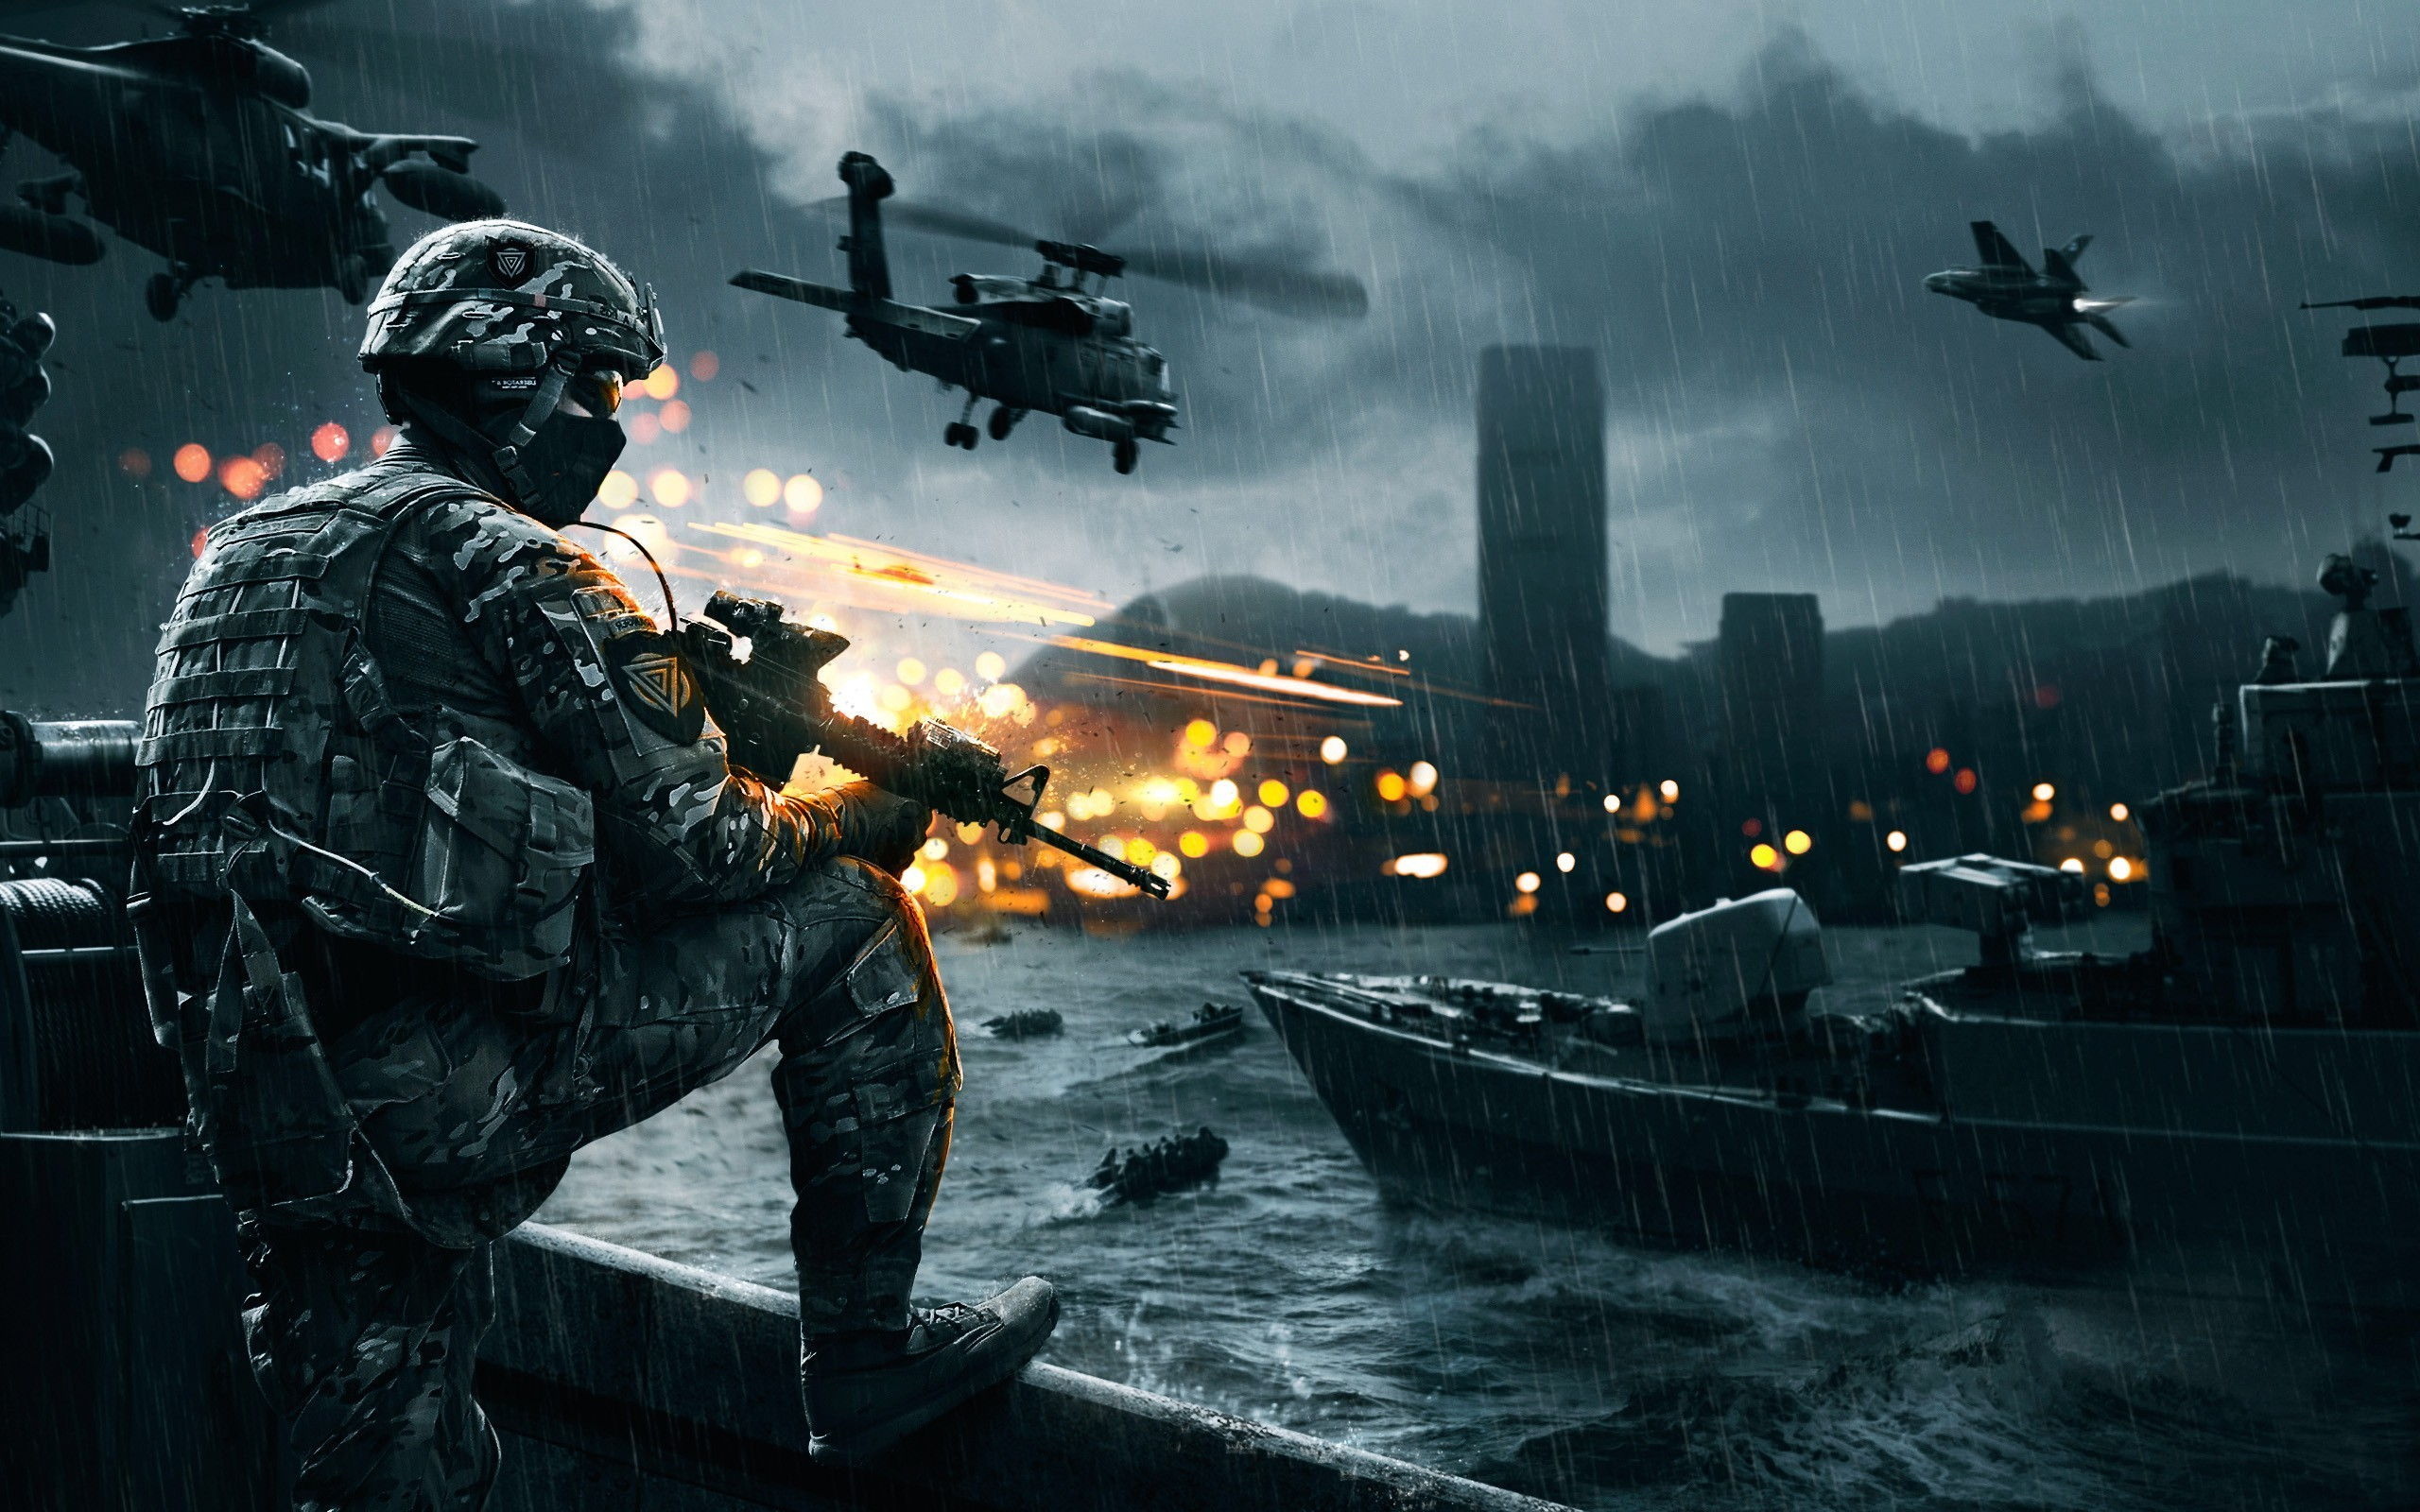 Battlefield 1 battlefield 4 hardline are all getting a - Battlefield screensaver ...